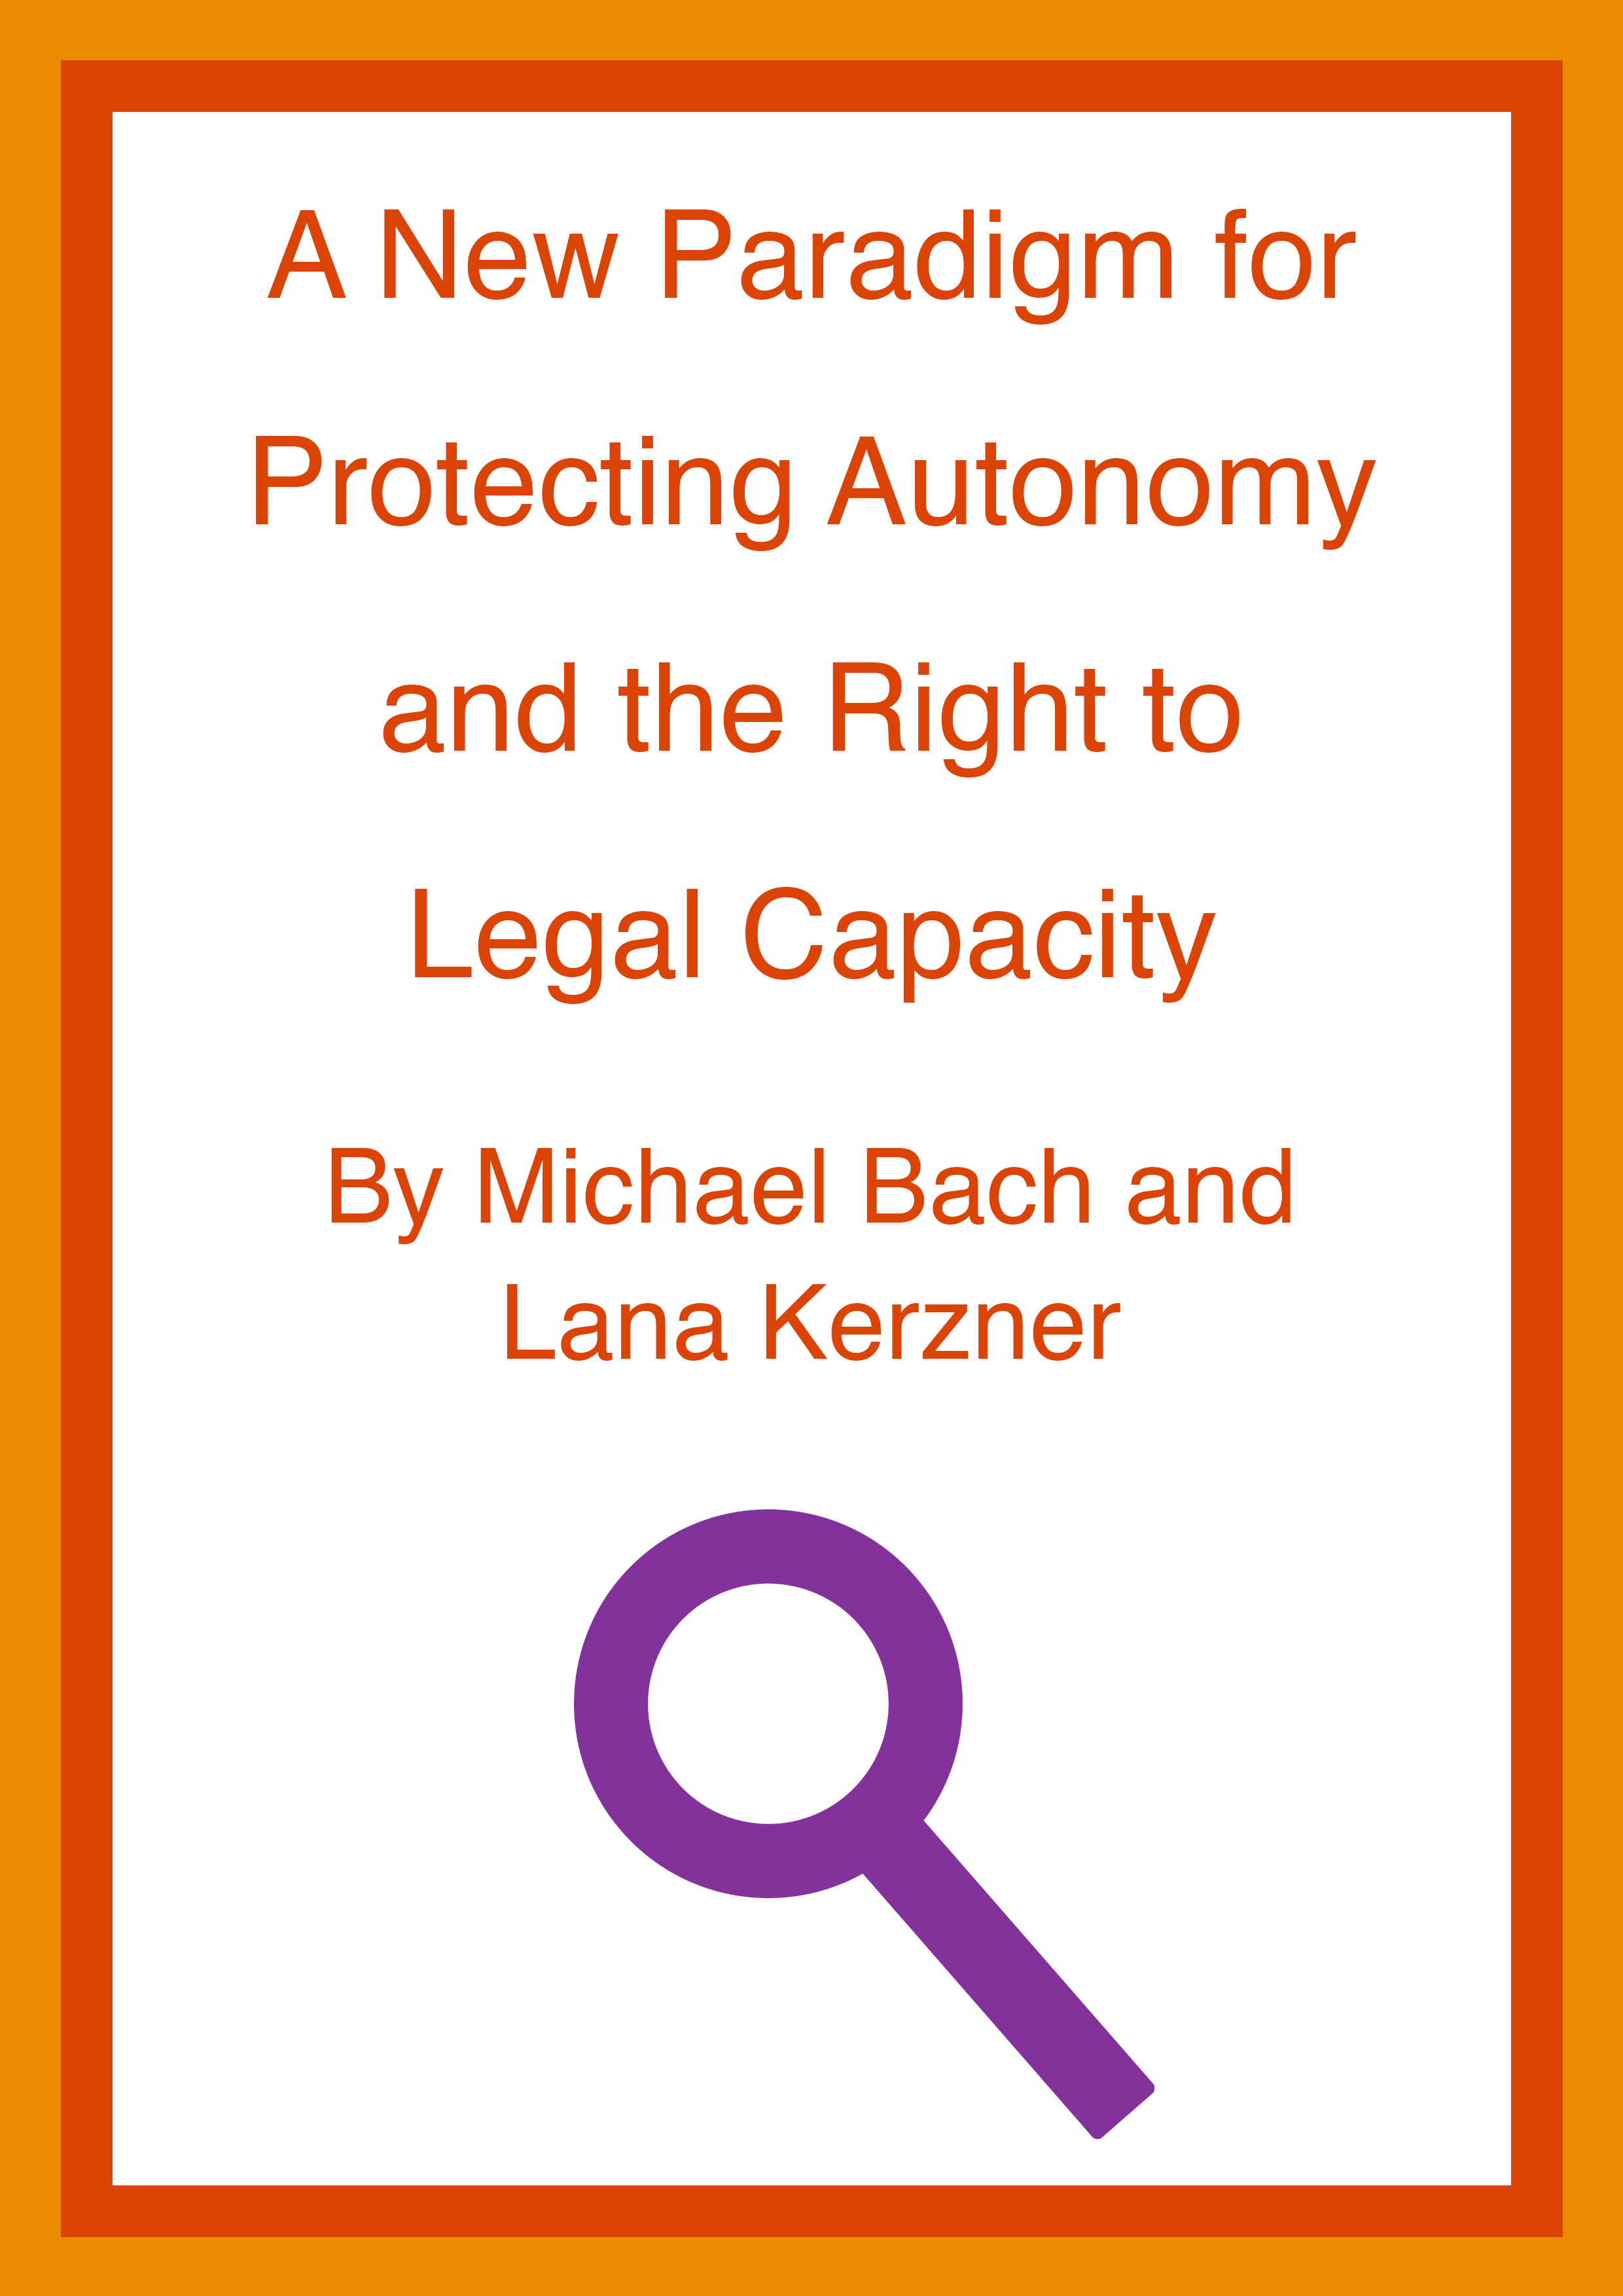 Cover art for: A New Paradigm for Protecting Autonomy and the Right to Legal Capacity